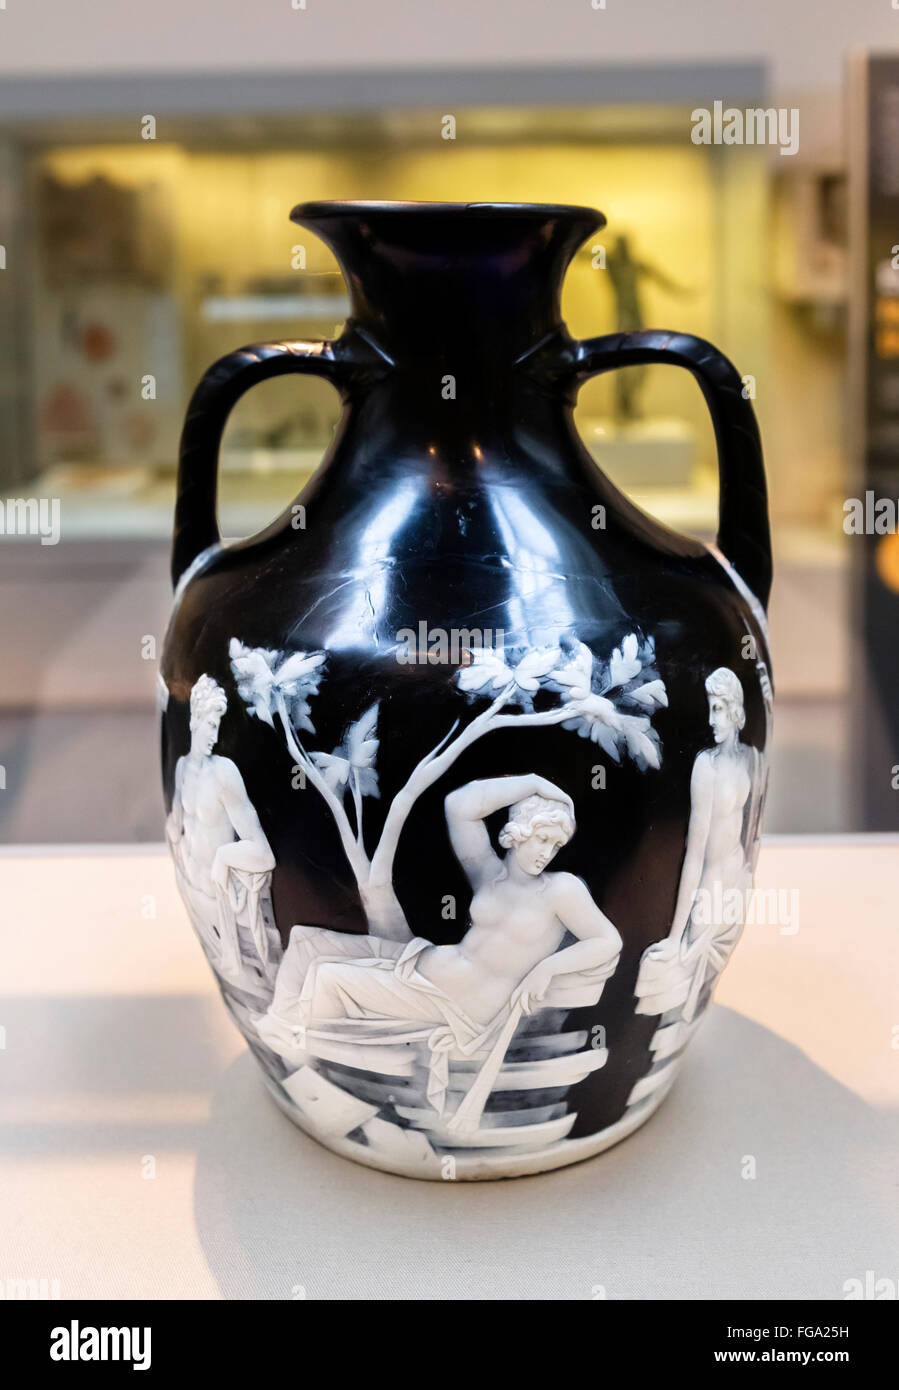 Portland vase stock photos portland vase stock images alamy the portland vase a roman cameo glass vase made between 15 bc and ad 25 reviewsmspy